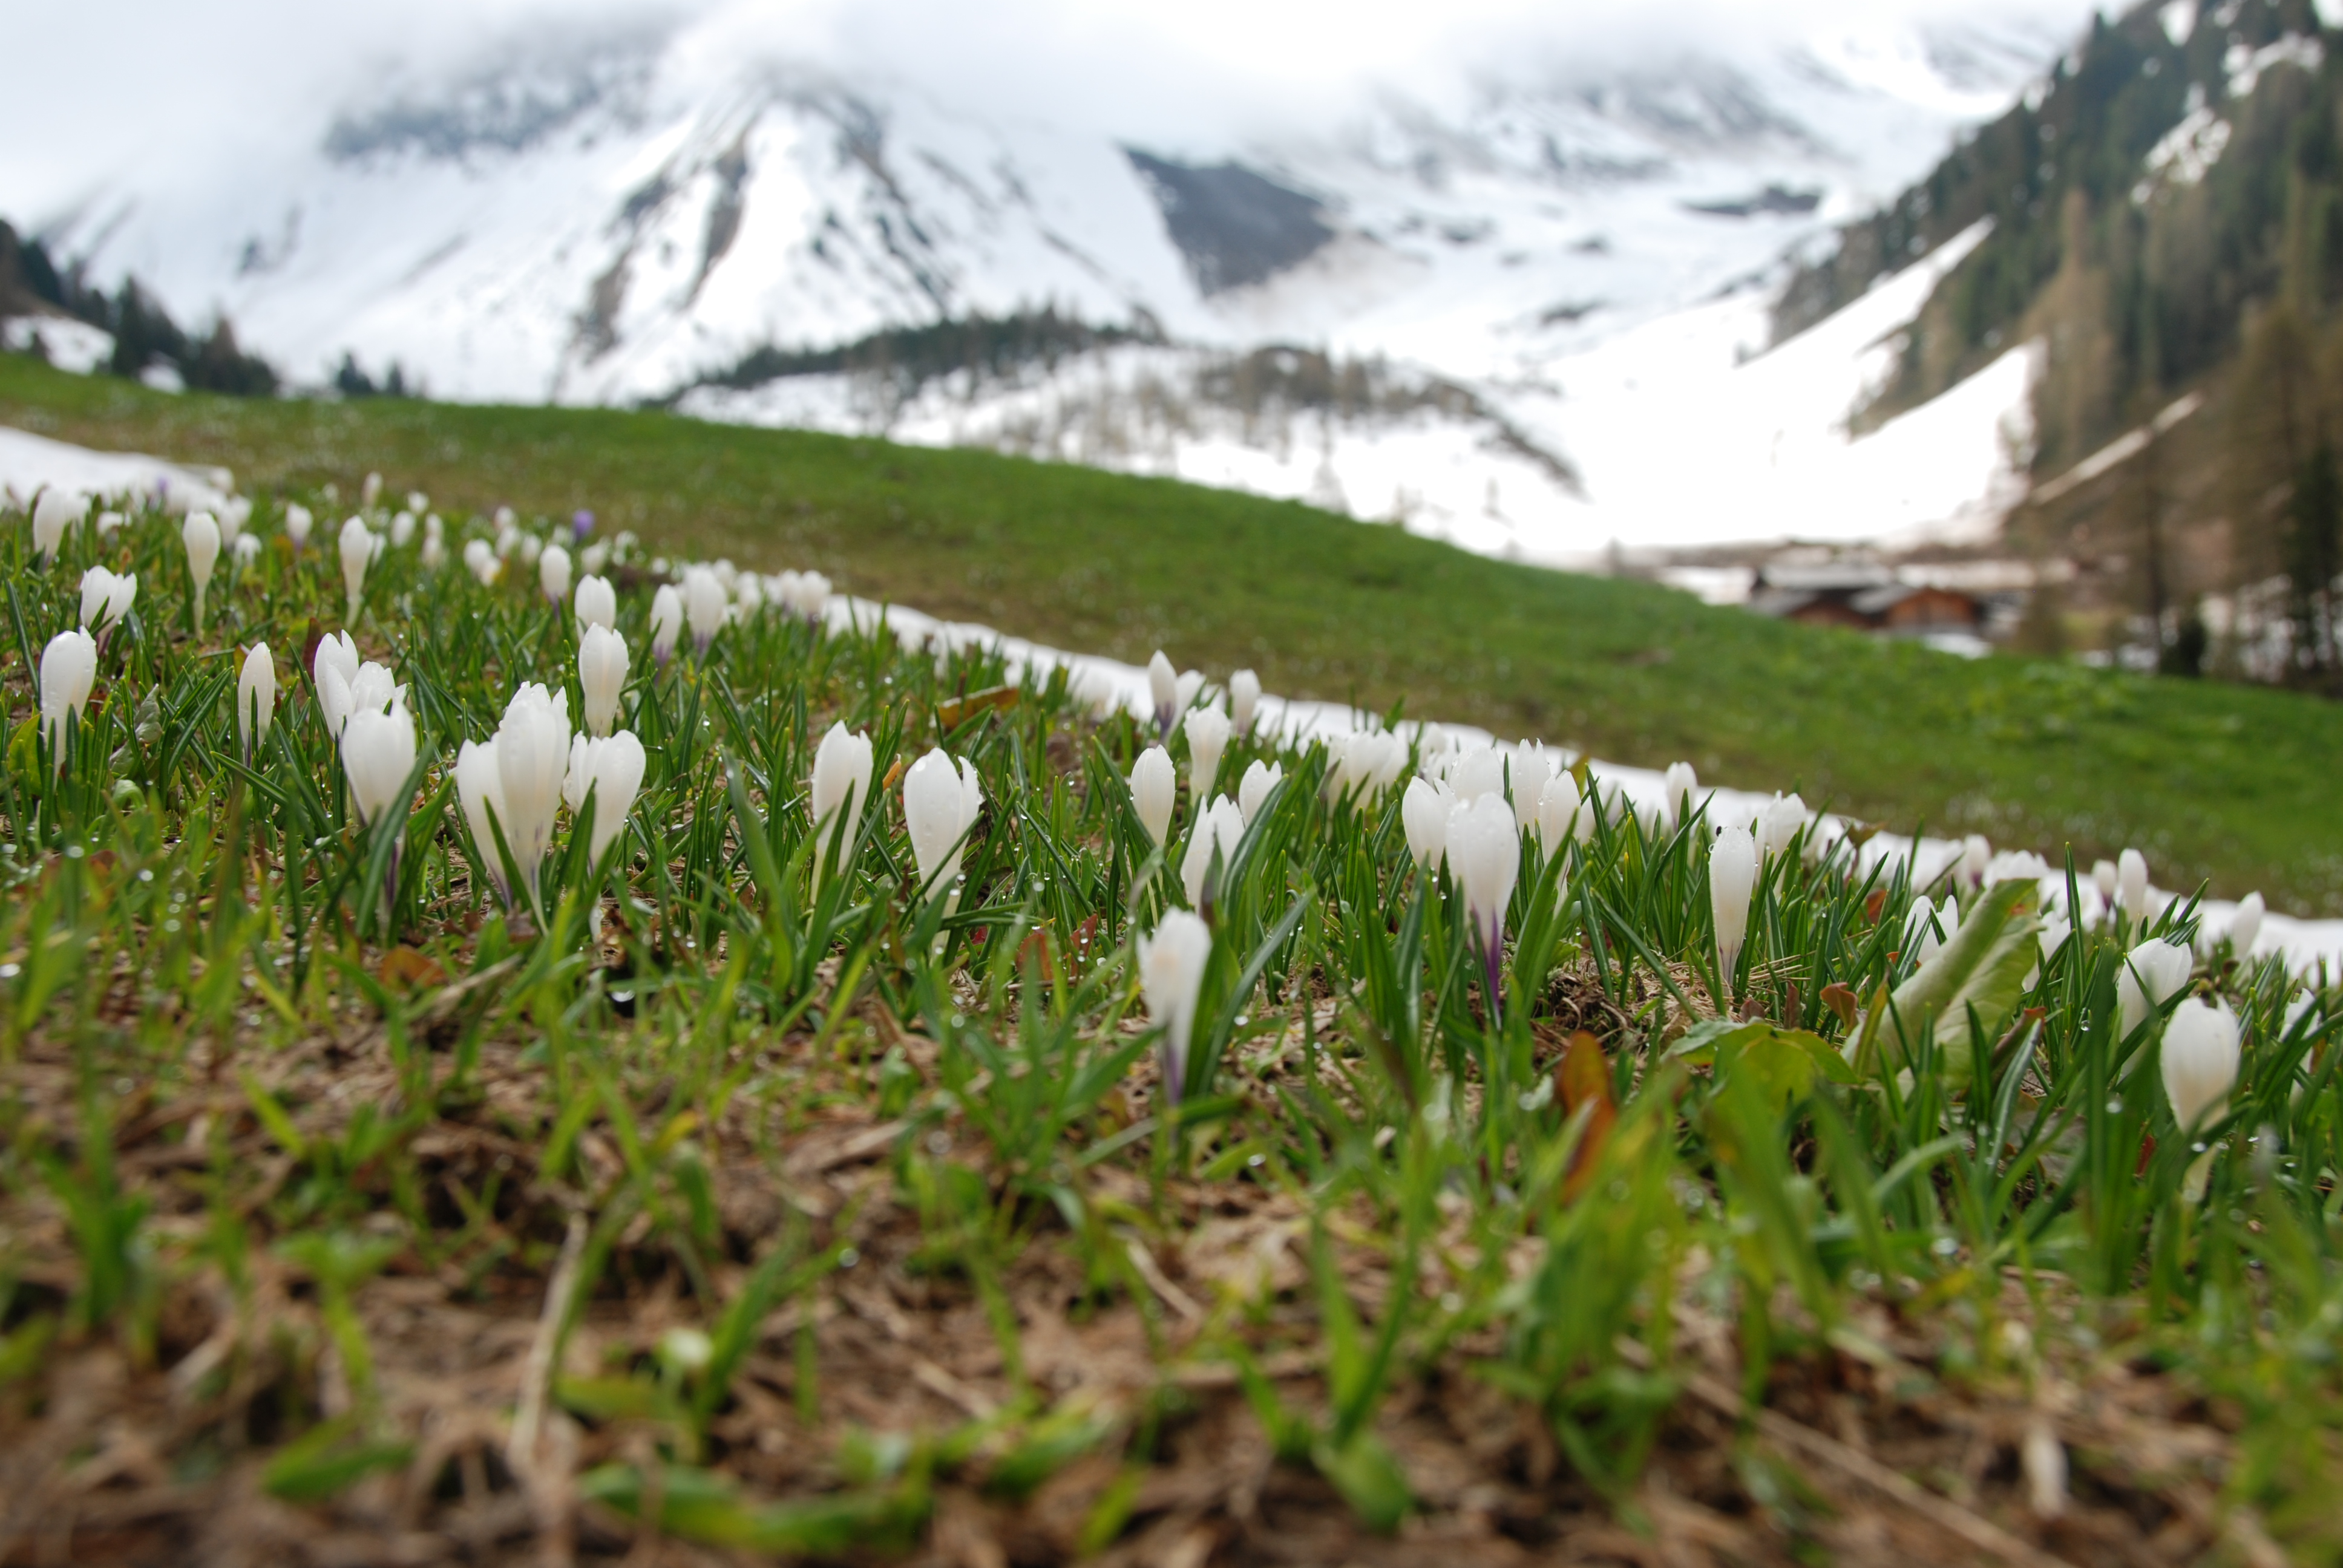 Springtime is coming earlier to the Swiss Alps. Photo: WSF